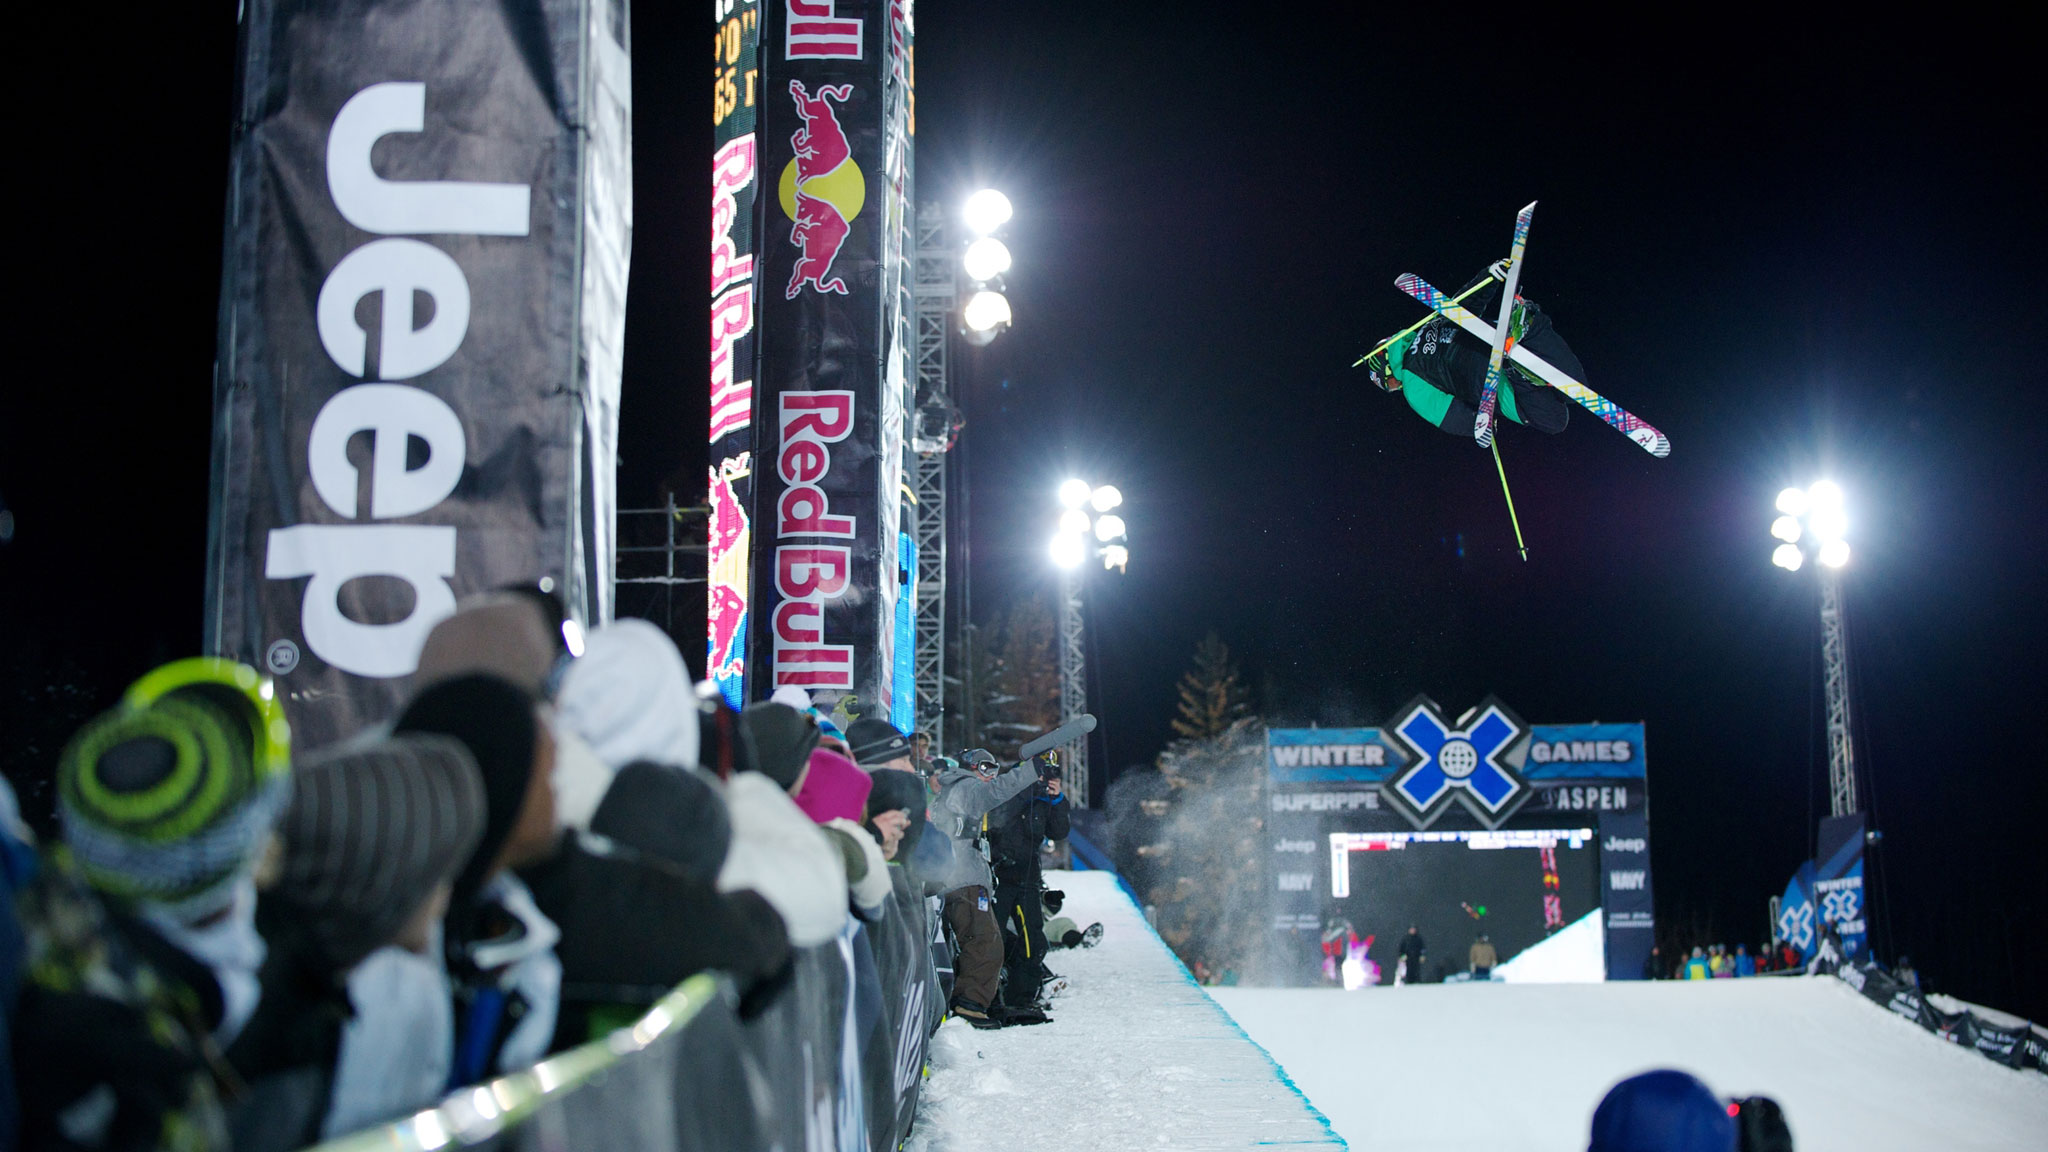 Xavier Bertoni last competed at X Games Aspen in 2012. He'll be representing France this week at the Olympics.